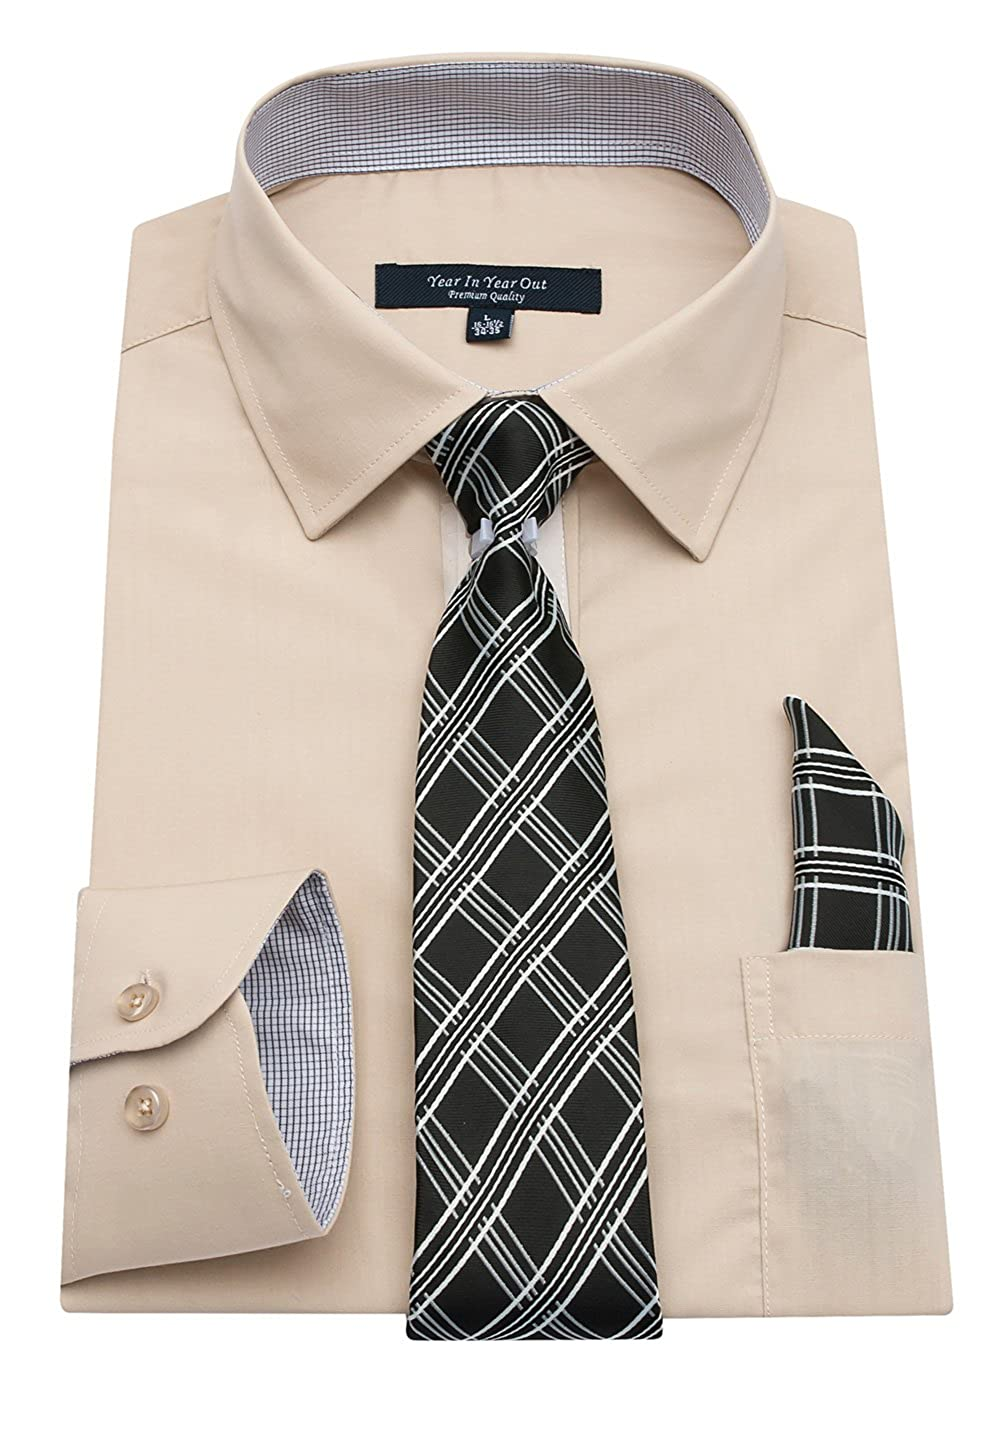 Year In Year Out Mens Long Sleeve Dress Shirts Slim Fit Shirts For